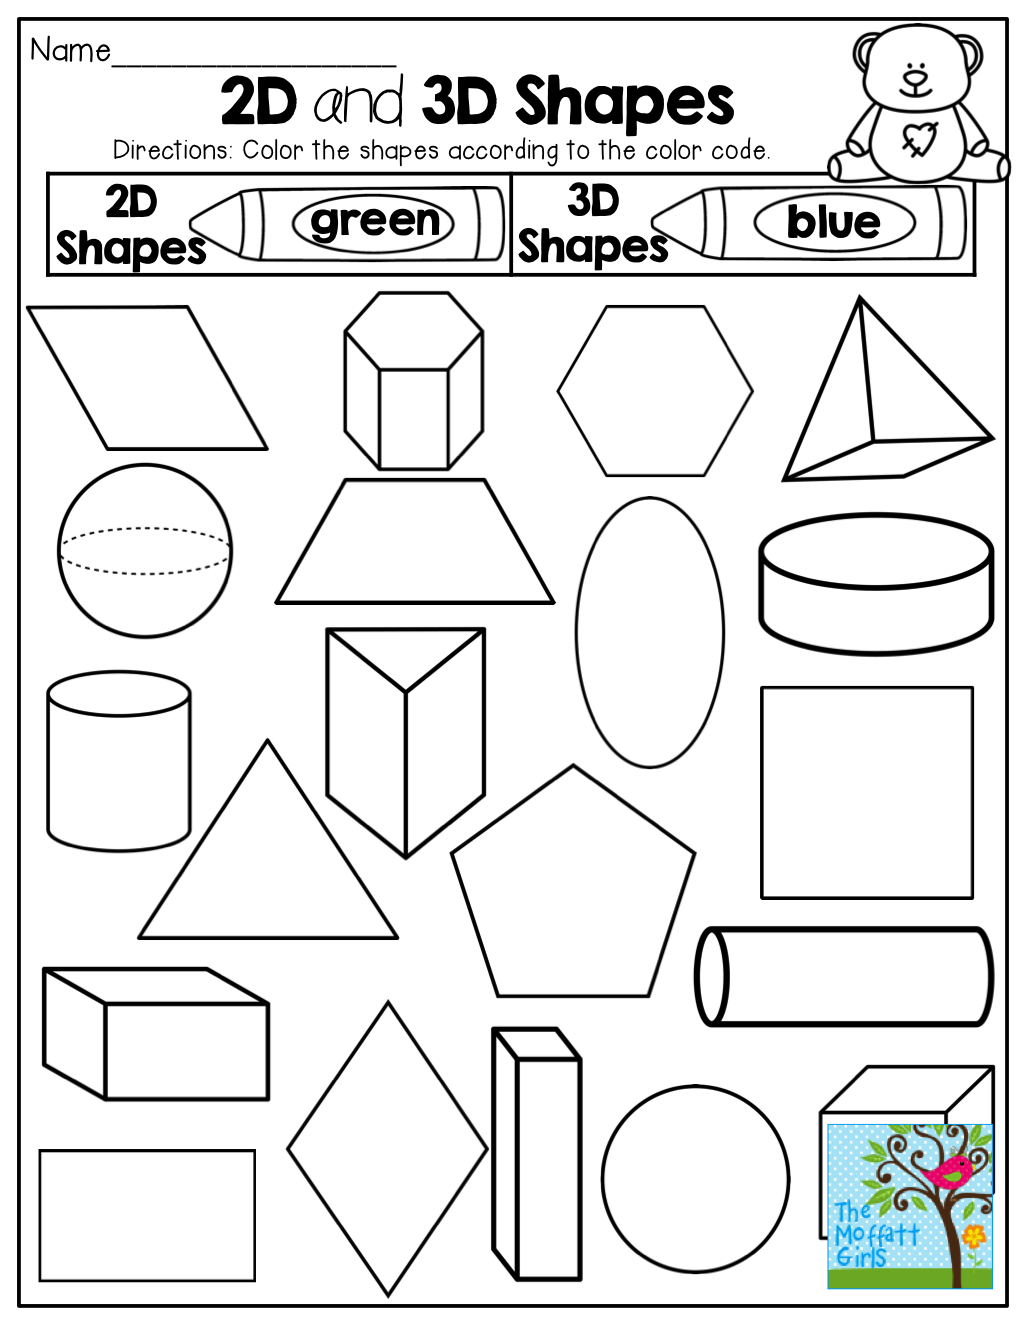 Colour 2d Shapes Worksheet